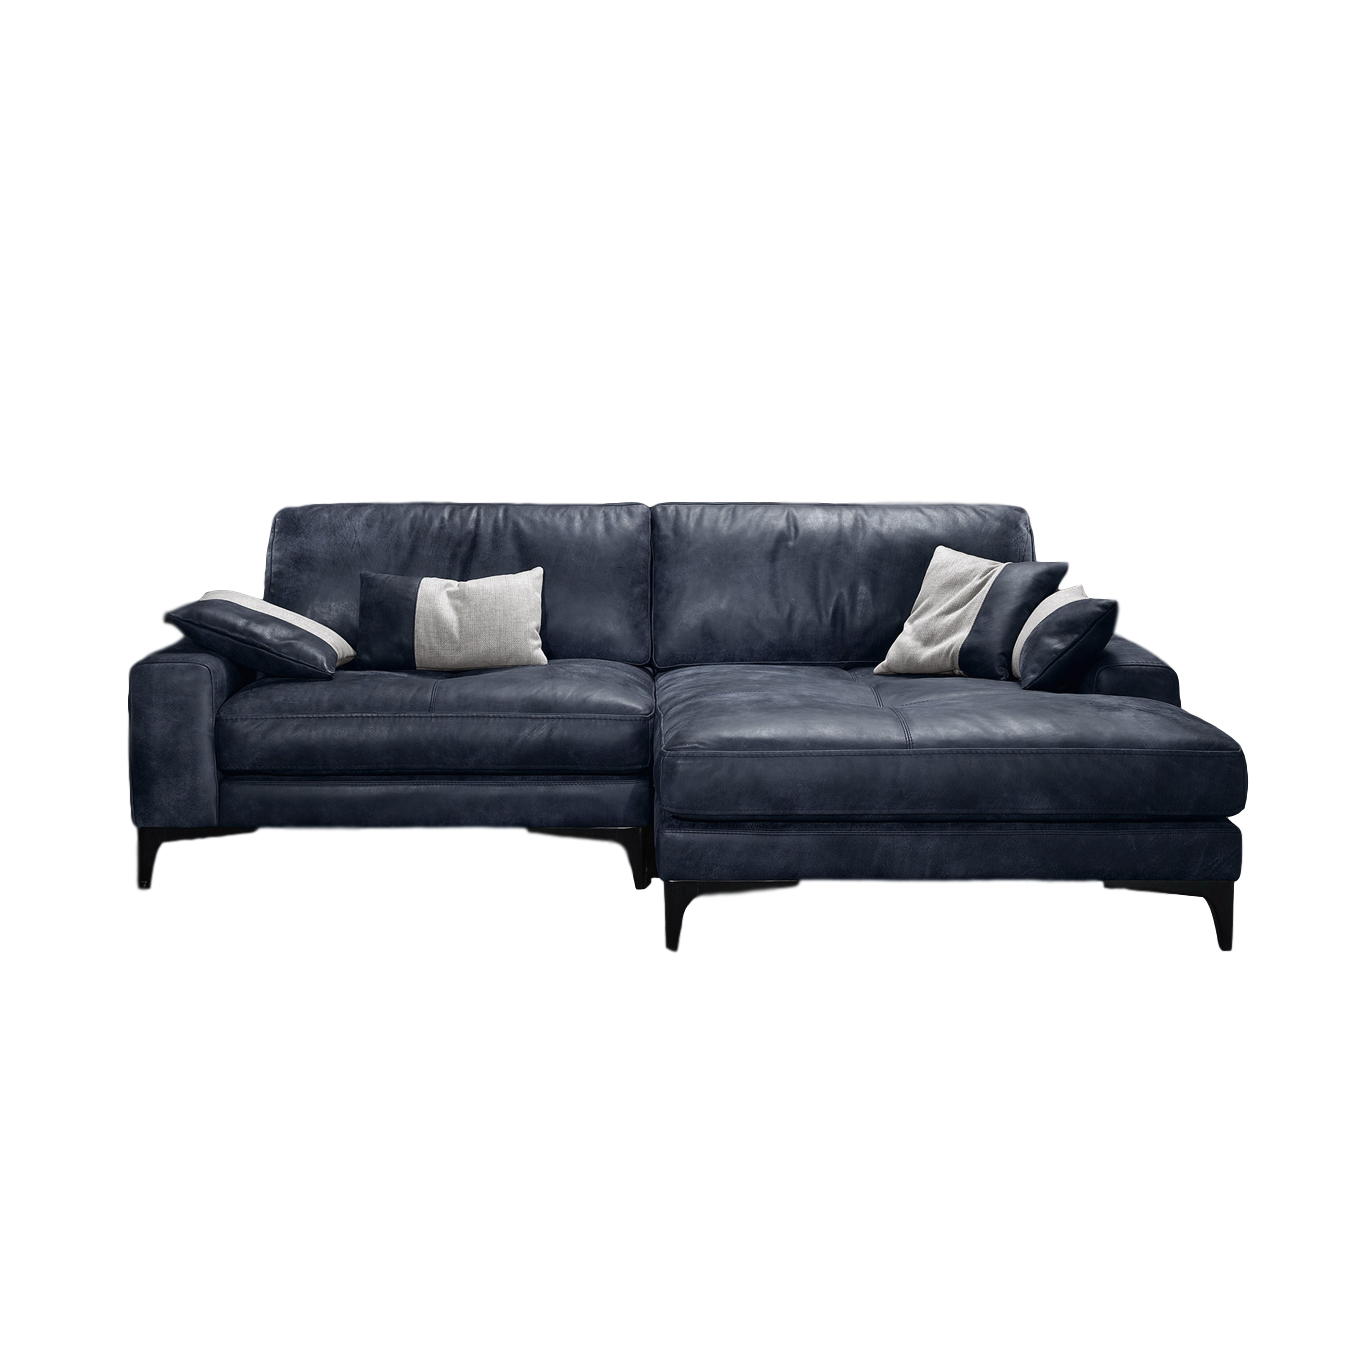 luxury furniture stores calgary sofas armchairs rigoletto sofa prianera luxuries of europe